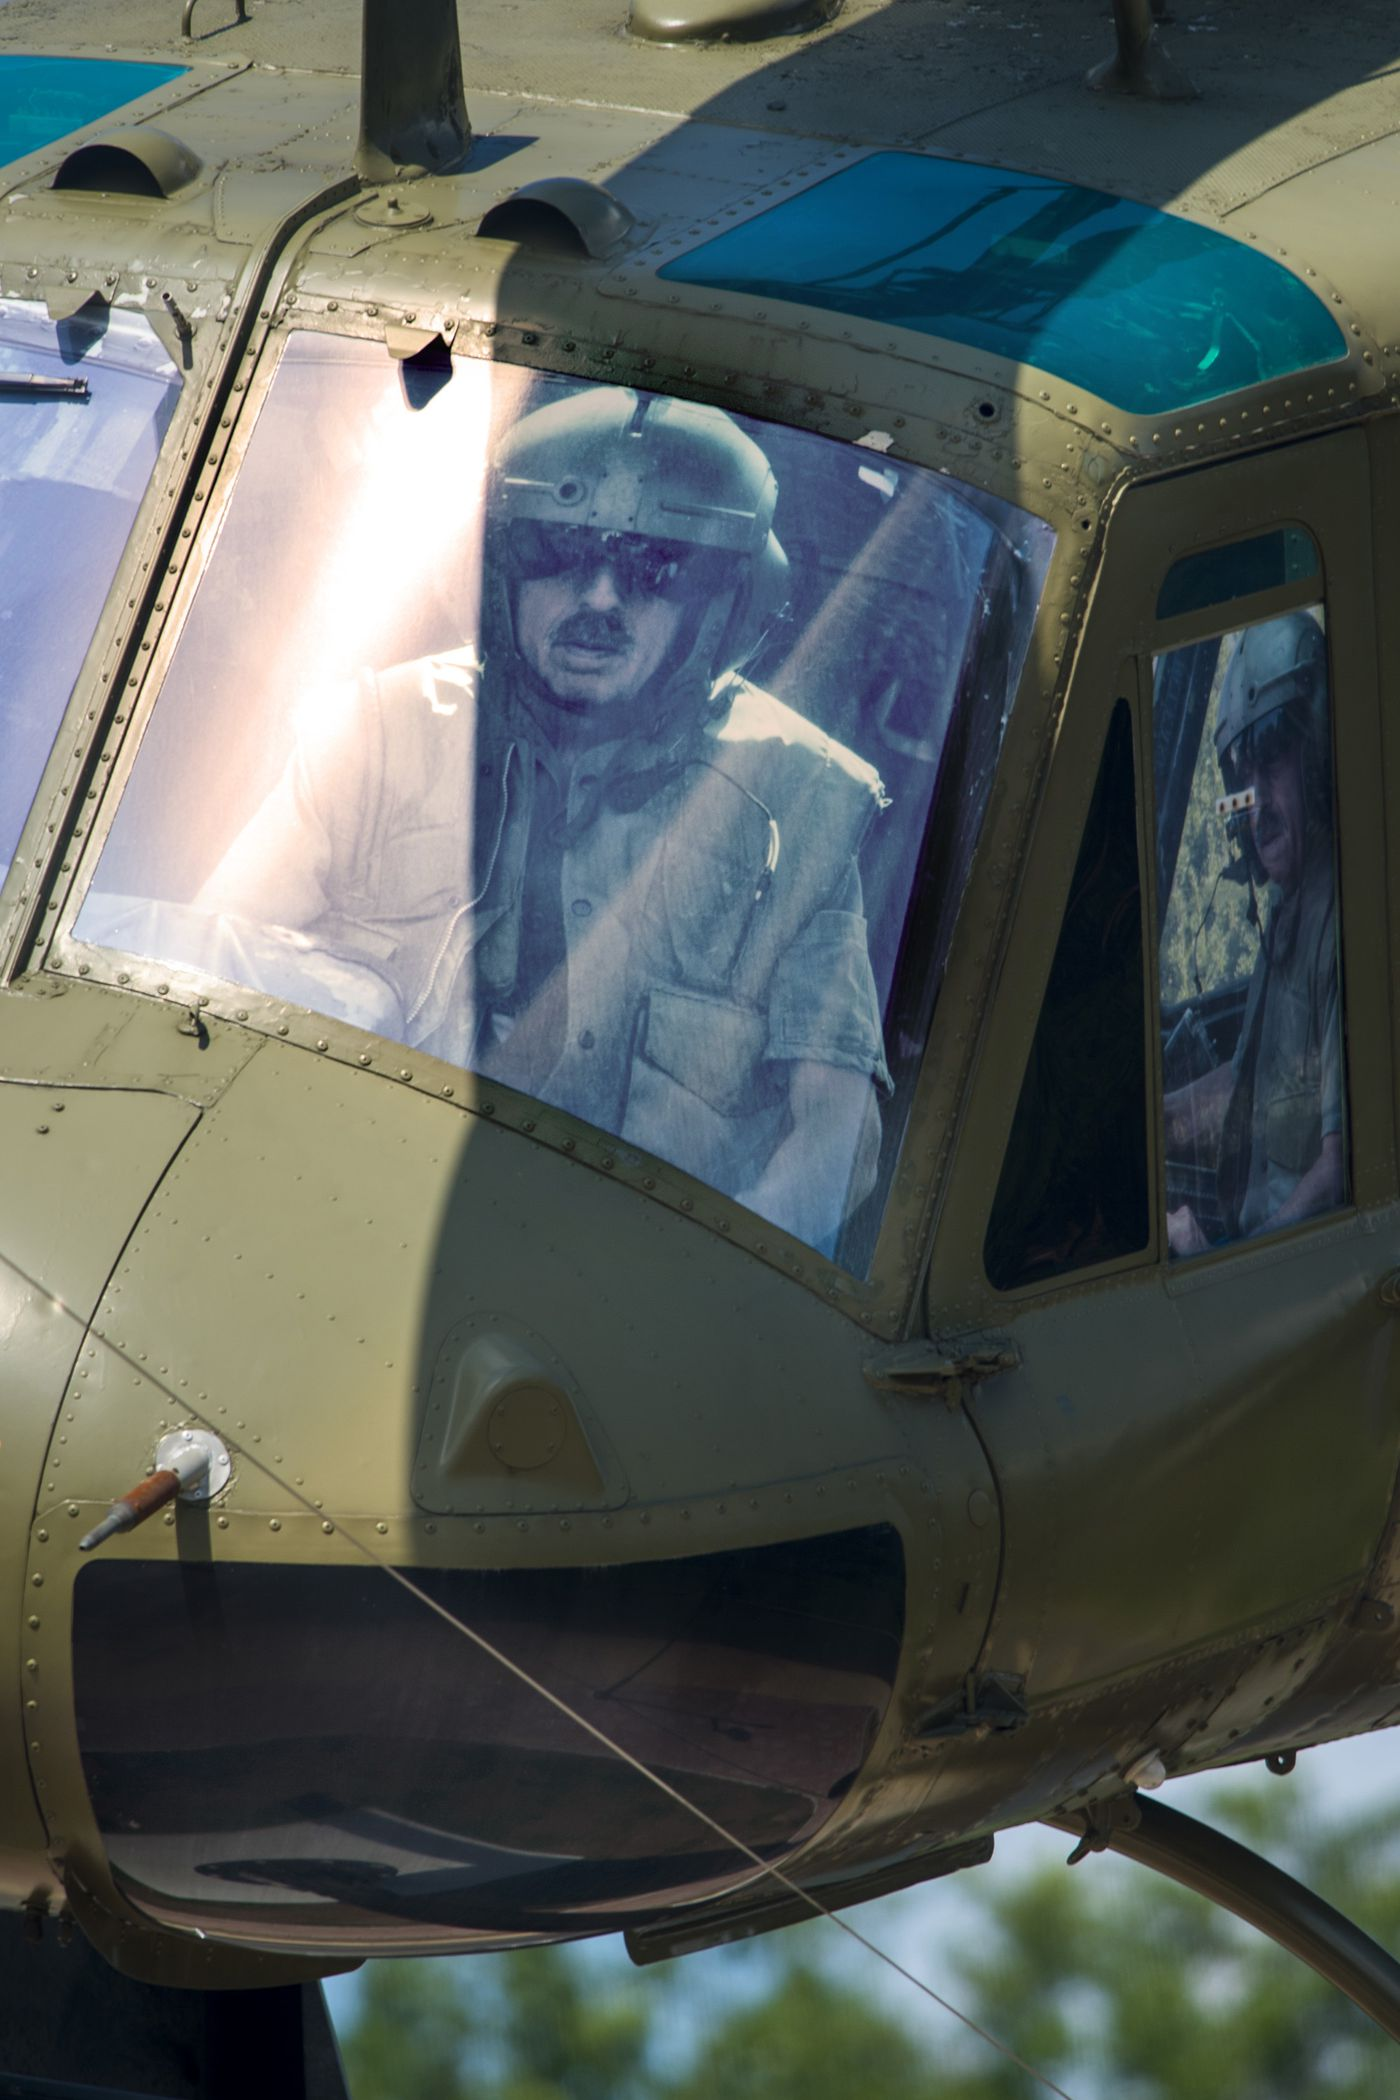 A life-size contemporary photograph of Ralph Storti is in the cockpit of the Huey helicopter. Other community members are pictured in other windows of the chopper.